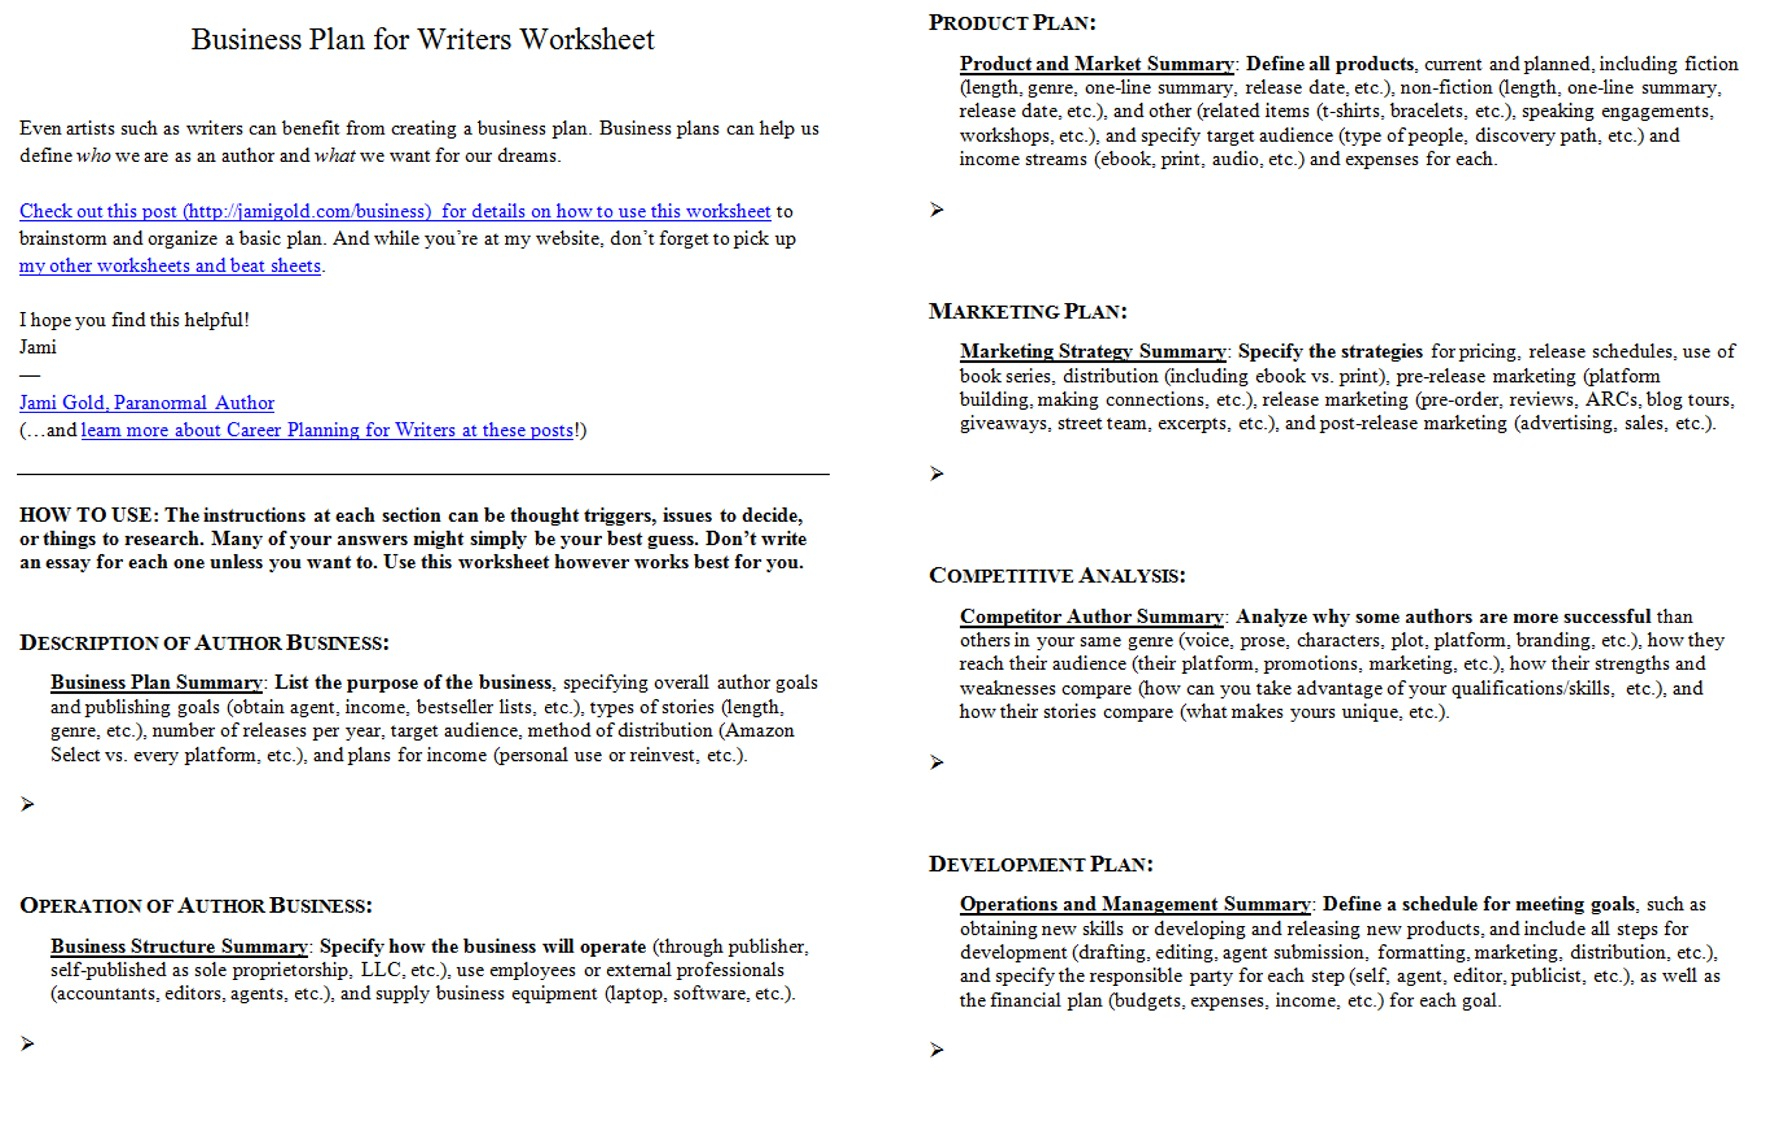 Aldiablosus  Seductive Worksheets For Writers  Jami Gold Paranormal Author With Inspiring Screen Shot Of Both Pages Of The Business Plan For Writers Worksheet With Comely Water Quality Worksheet Also American Industrial Revolution Worksheets In Addition Alexander The Great Worksheets And Fun Th Grade Worksheets As Well As Multiplication Worksheets Free Printable Rd Grade Additionally Subtraction With And Without Regrouping Worksheets From Jamigoldcom With Aldiablosus  Inspiring Worksheets For Writers  Jami Gold Paranormal Author With Comely Screen Shot Of Both Pages Of The Business Plan For Writers Worksheet And Seductive Water Quality Worksheet Also American Industrial Revolution Worksheets In Addition Alexander The Great Worksheets From Jamigoldcom